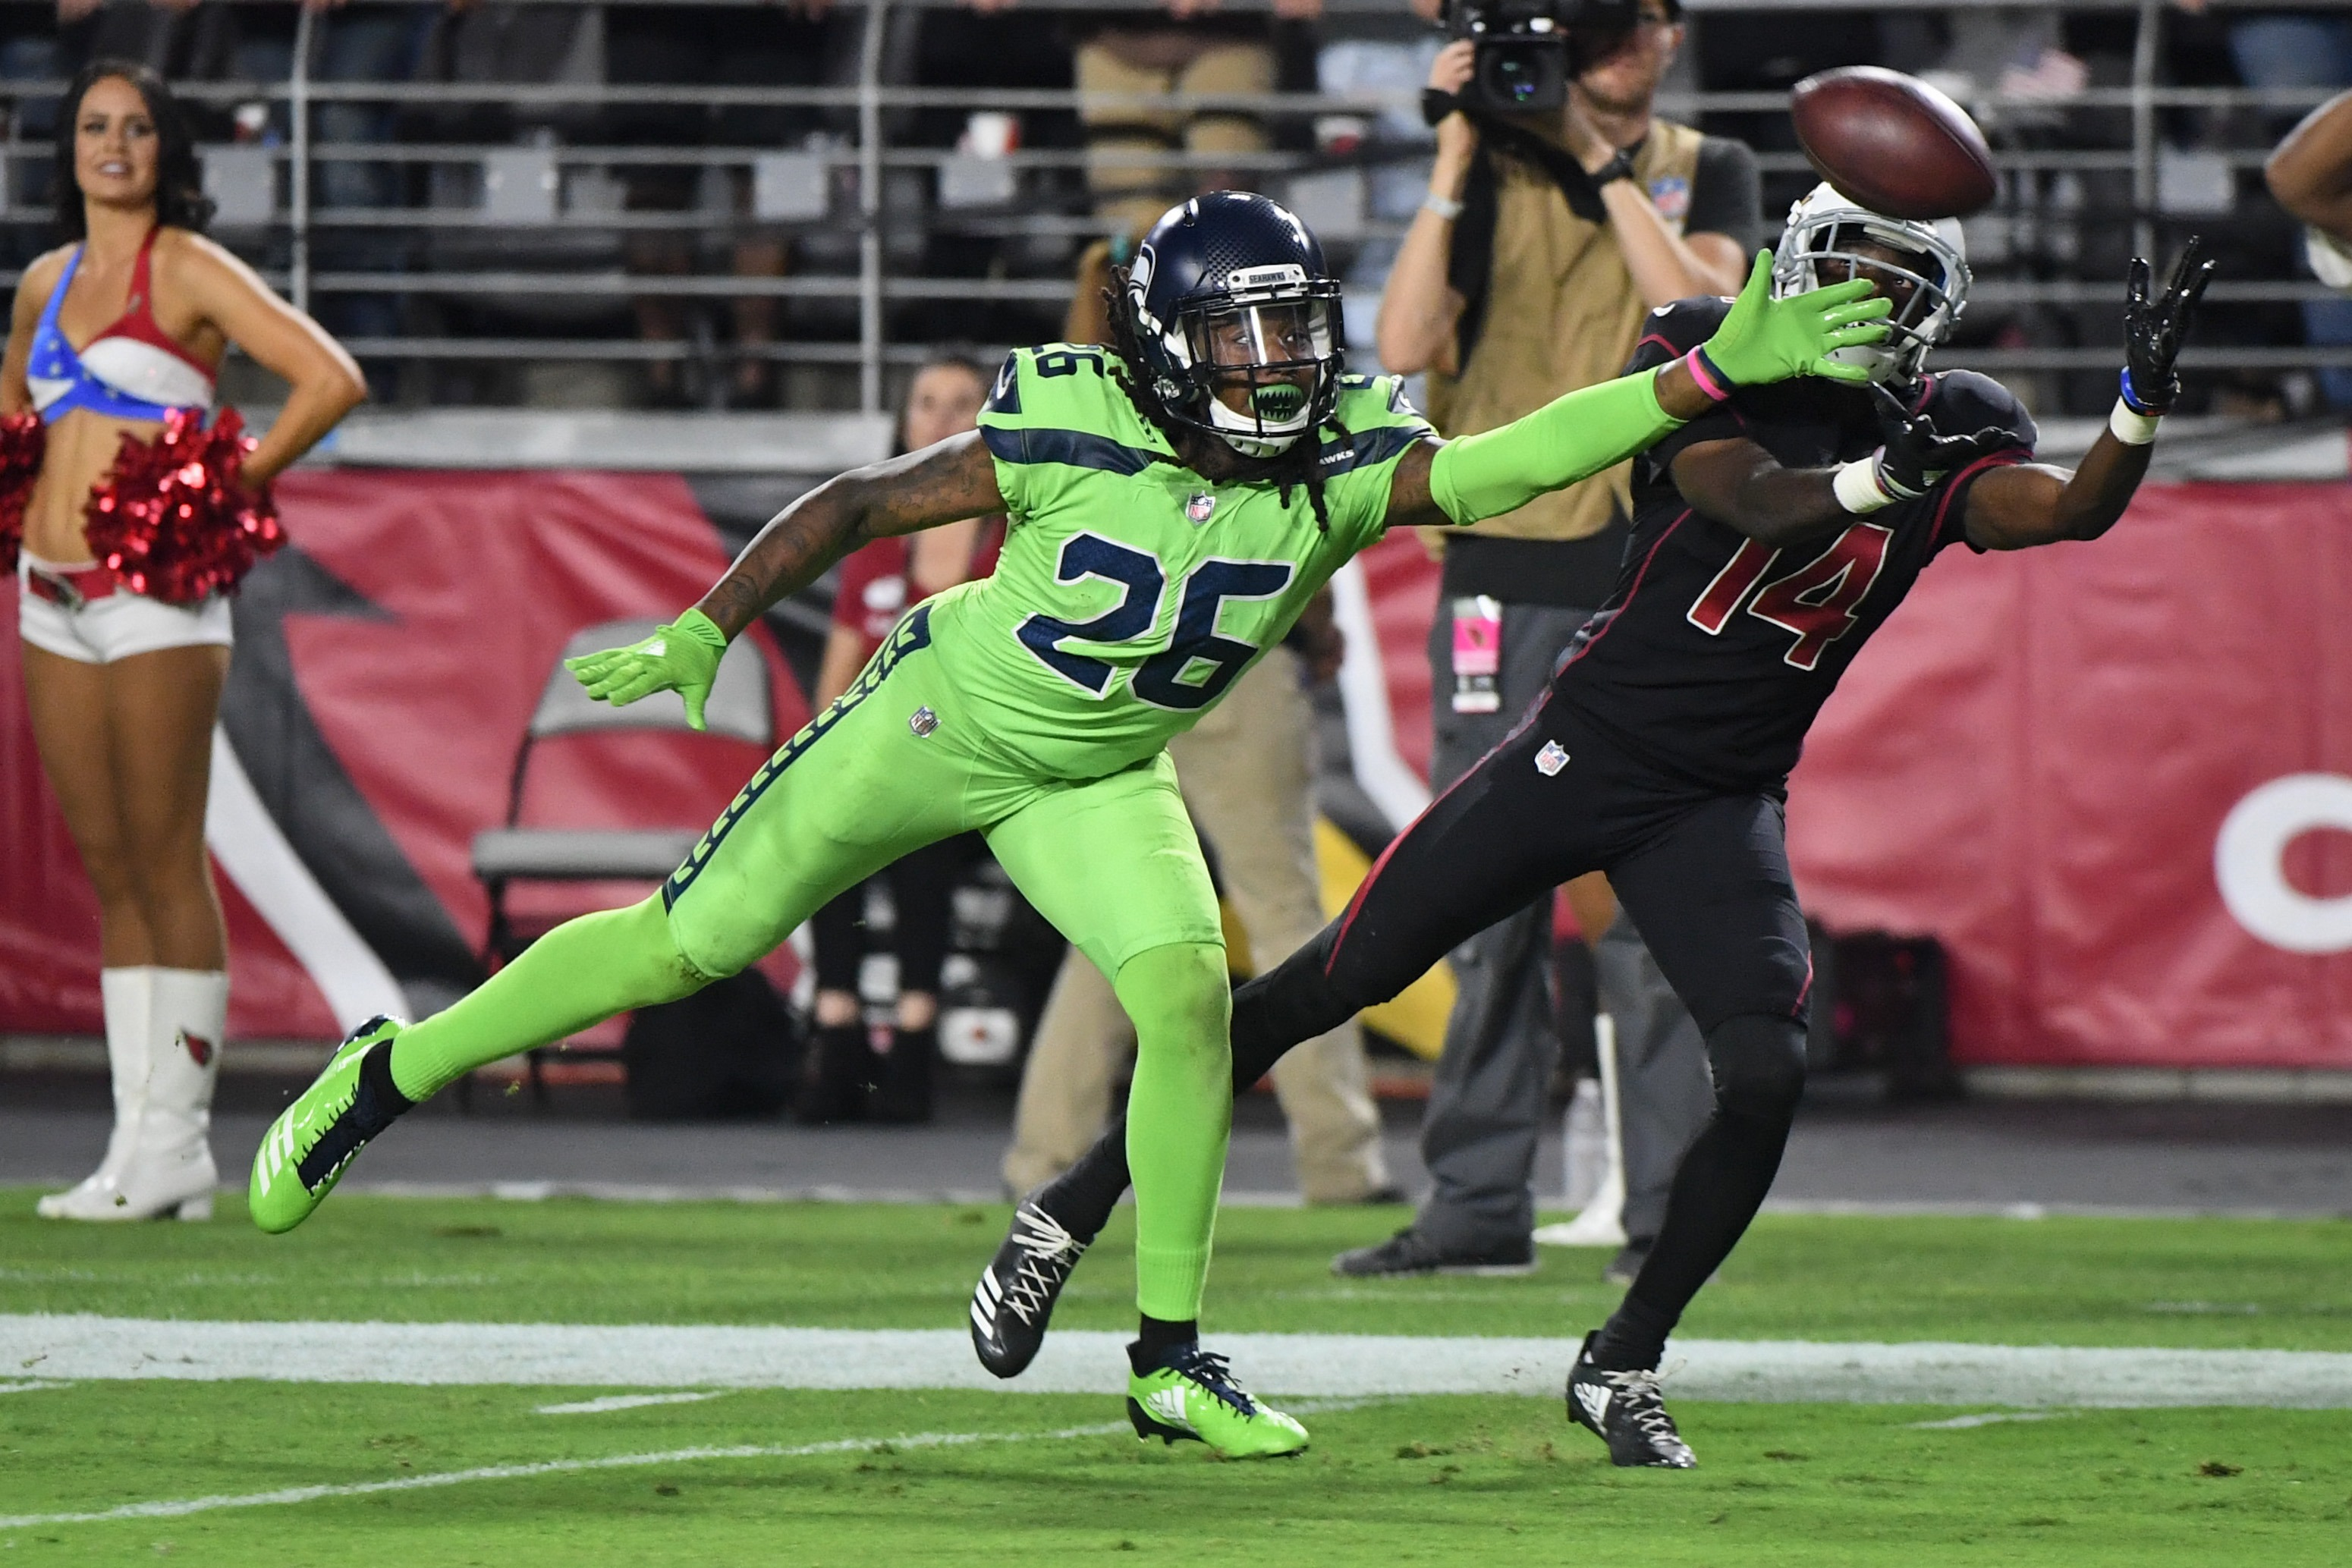 9679eaea6618b According to the team's social media accounts, the Seahawks will be busting  out their alternate action green uniforms for their upcoming Week 14  contest ...